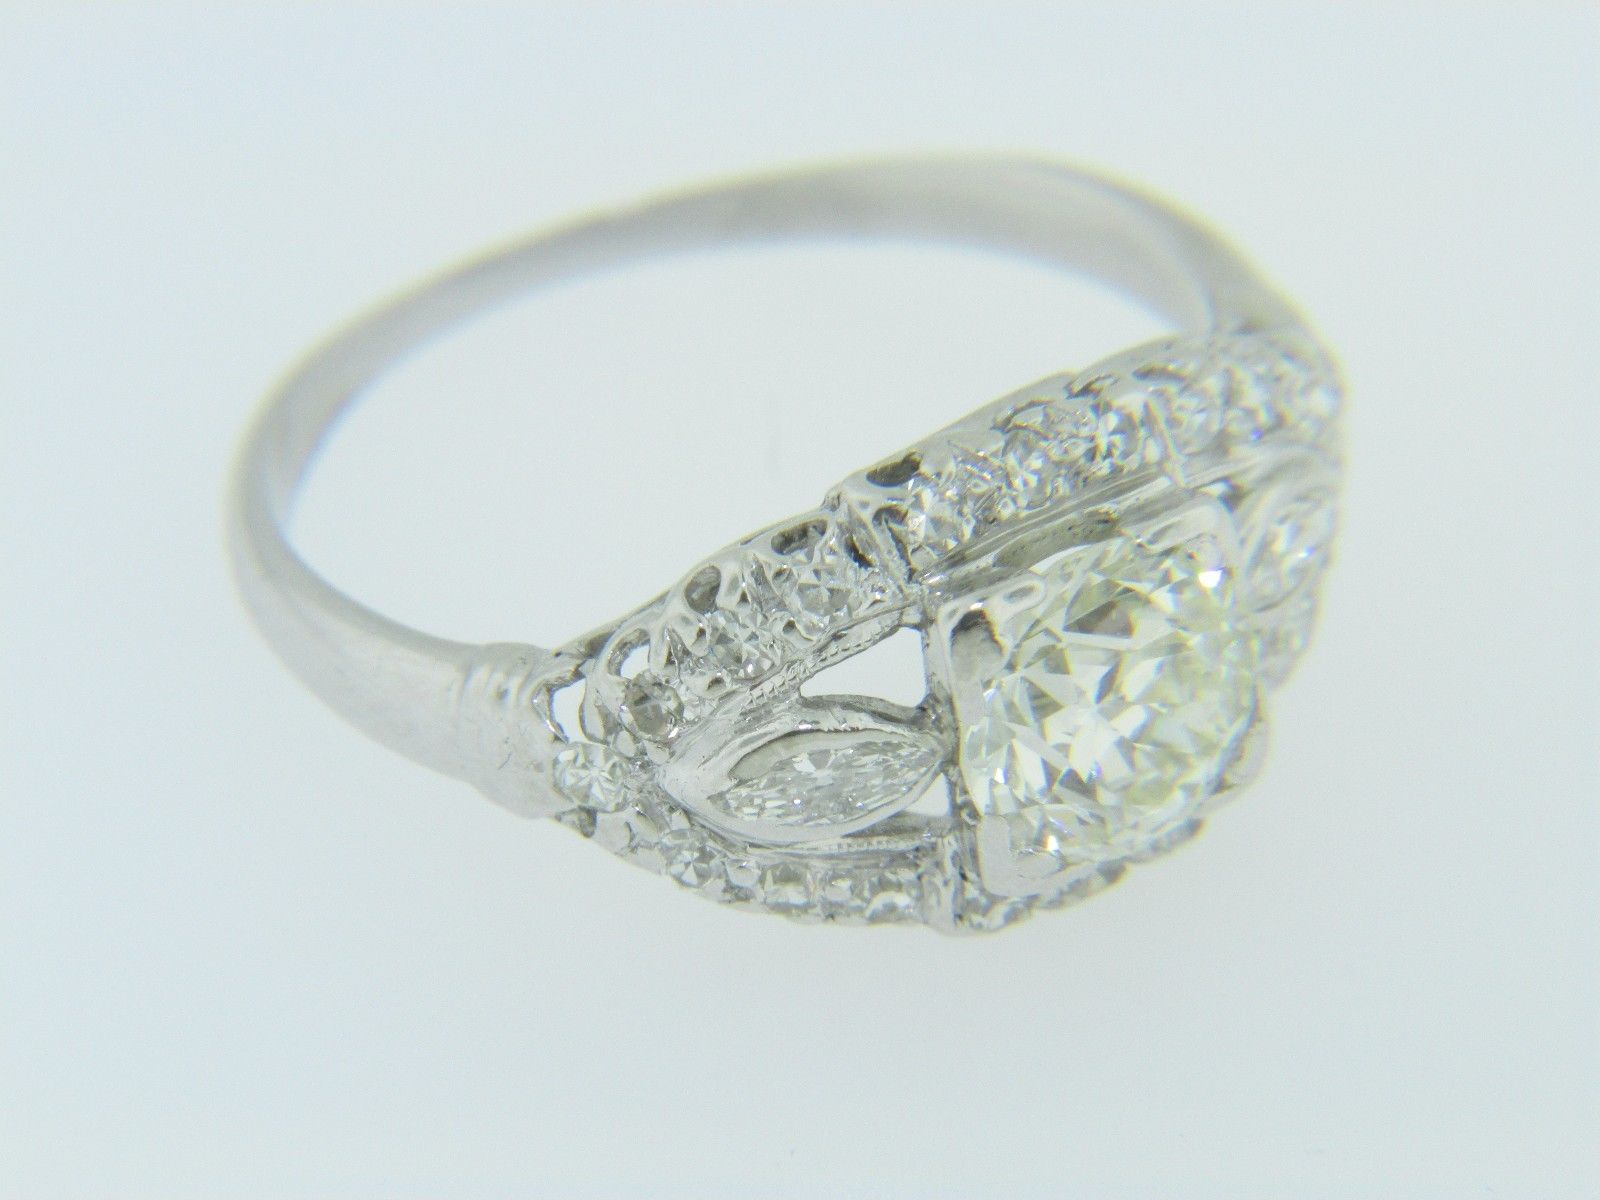 eb ring promise popular wsatugz engagement rings diamond mine cut old wedding